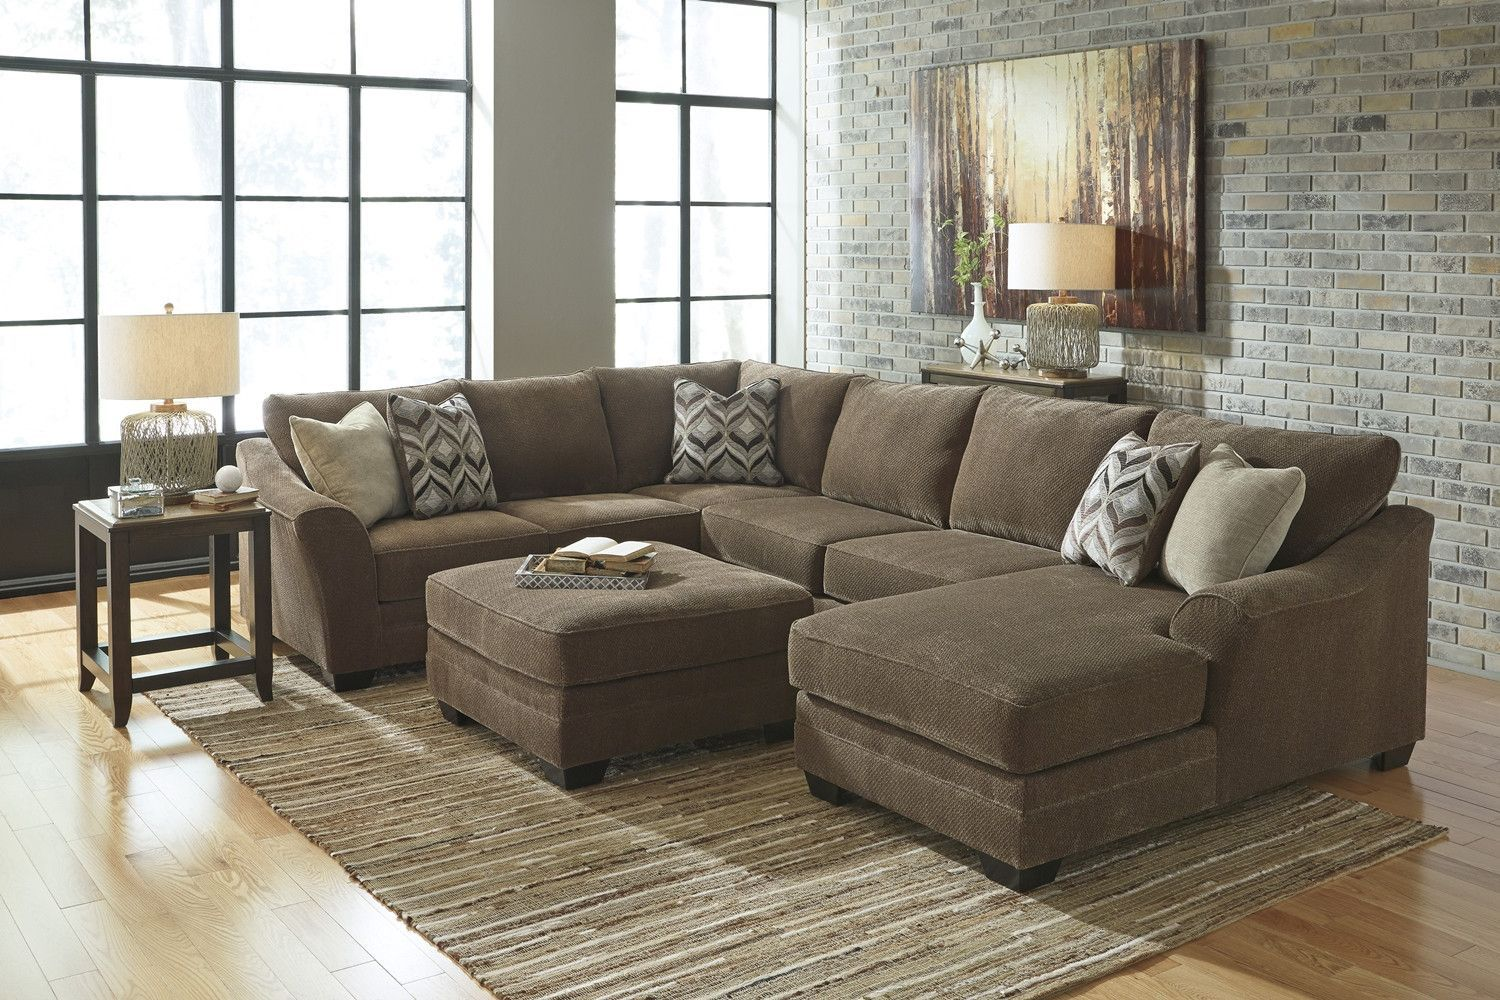 Ashley Justyna Sectional with Chaise | Home: Living Room | Pinterest ...